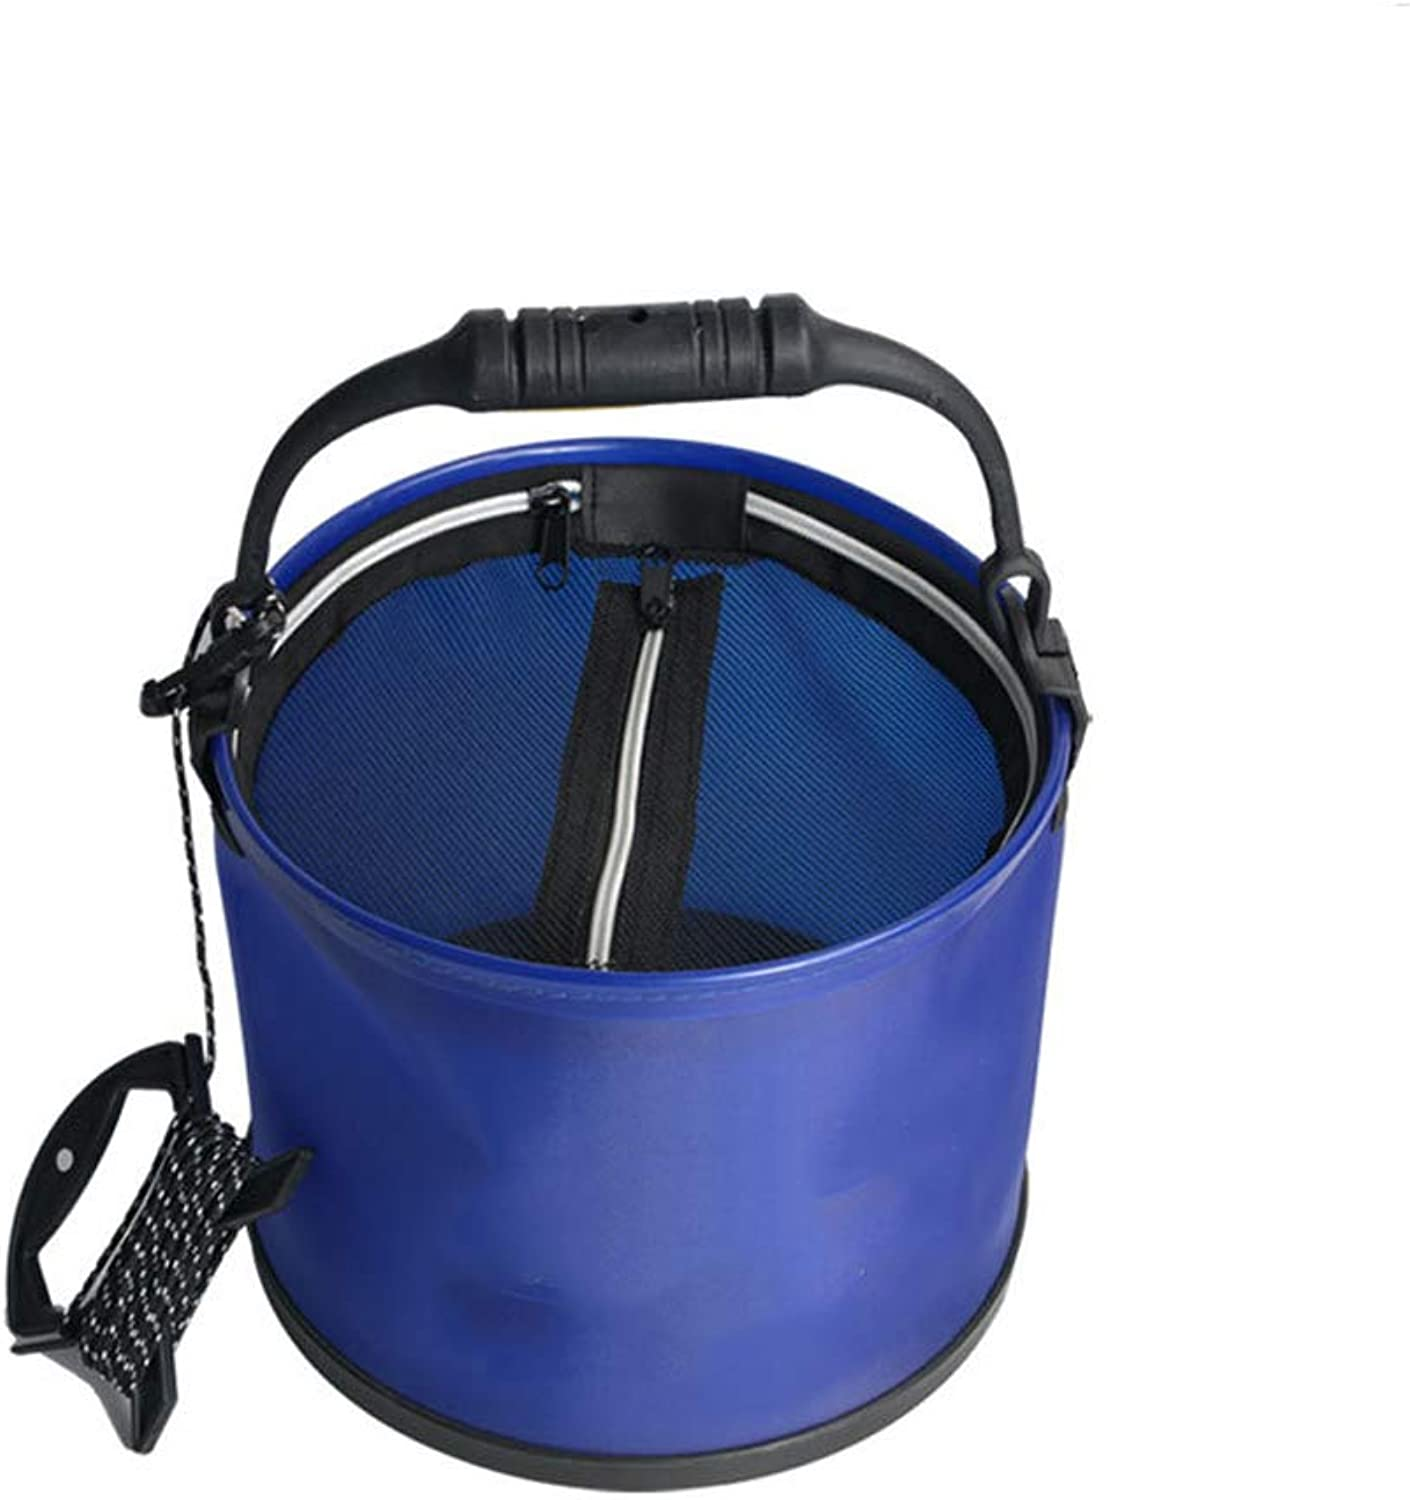 Portable Fish Bucket Foldable Fabric Folding Bucket Water Storage Container Carrier Bag for Fishing